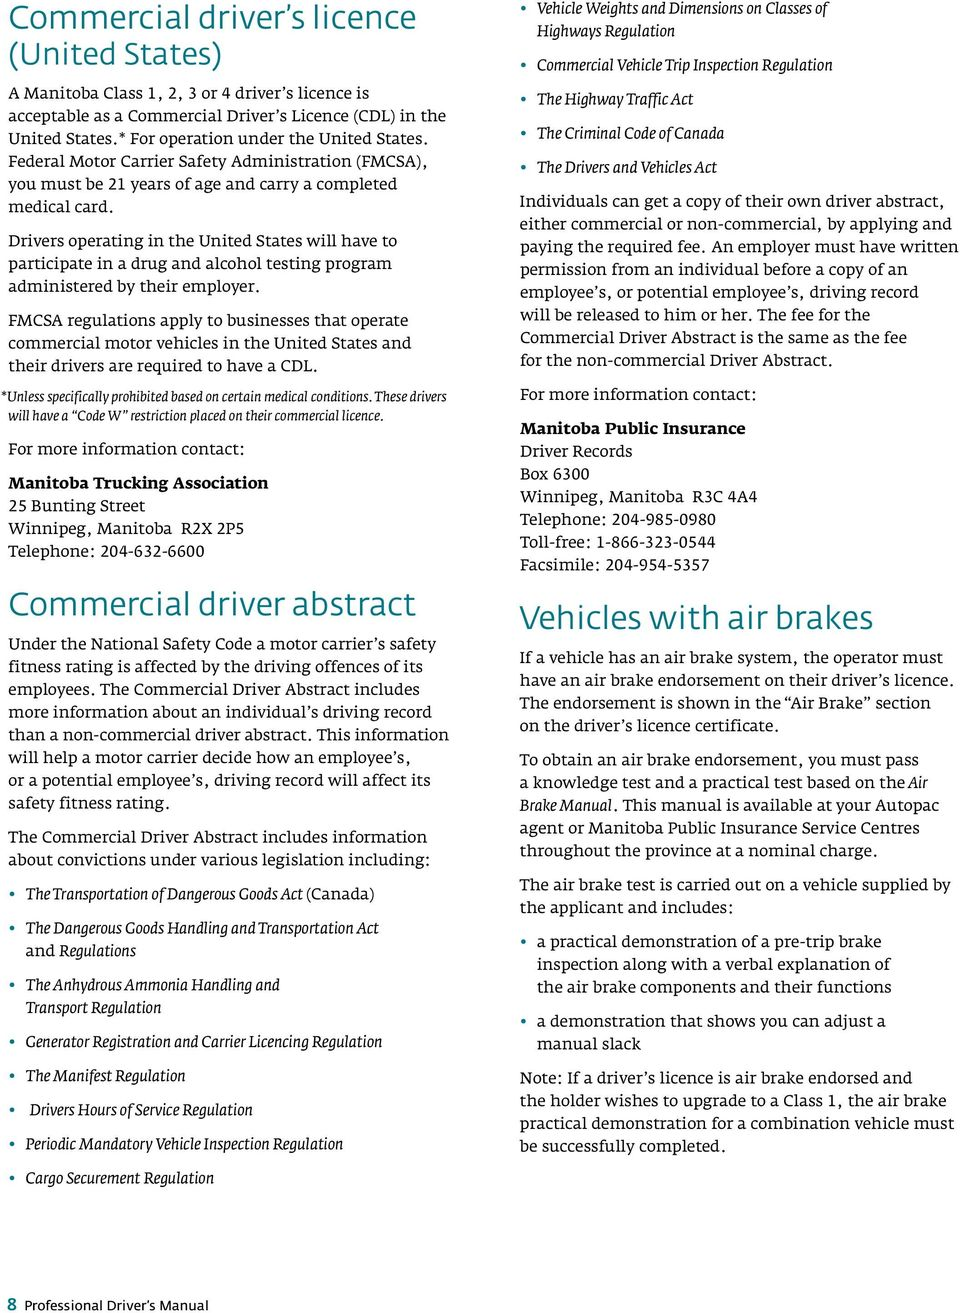 what is a commercial drivers abstract